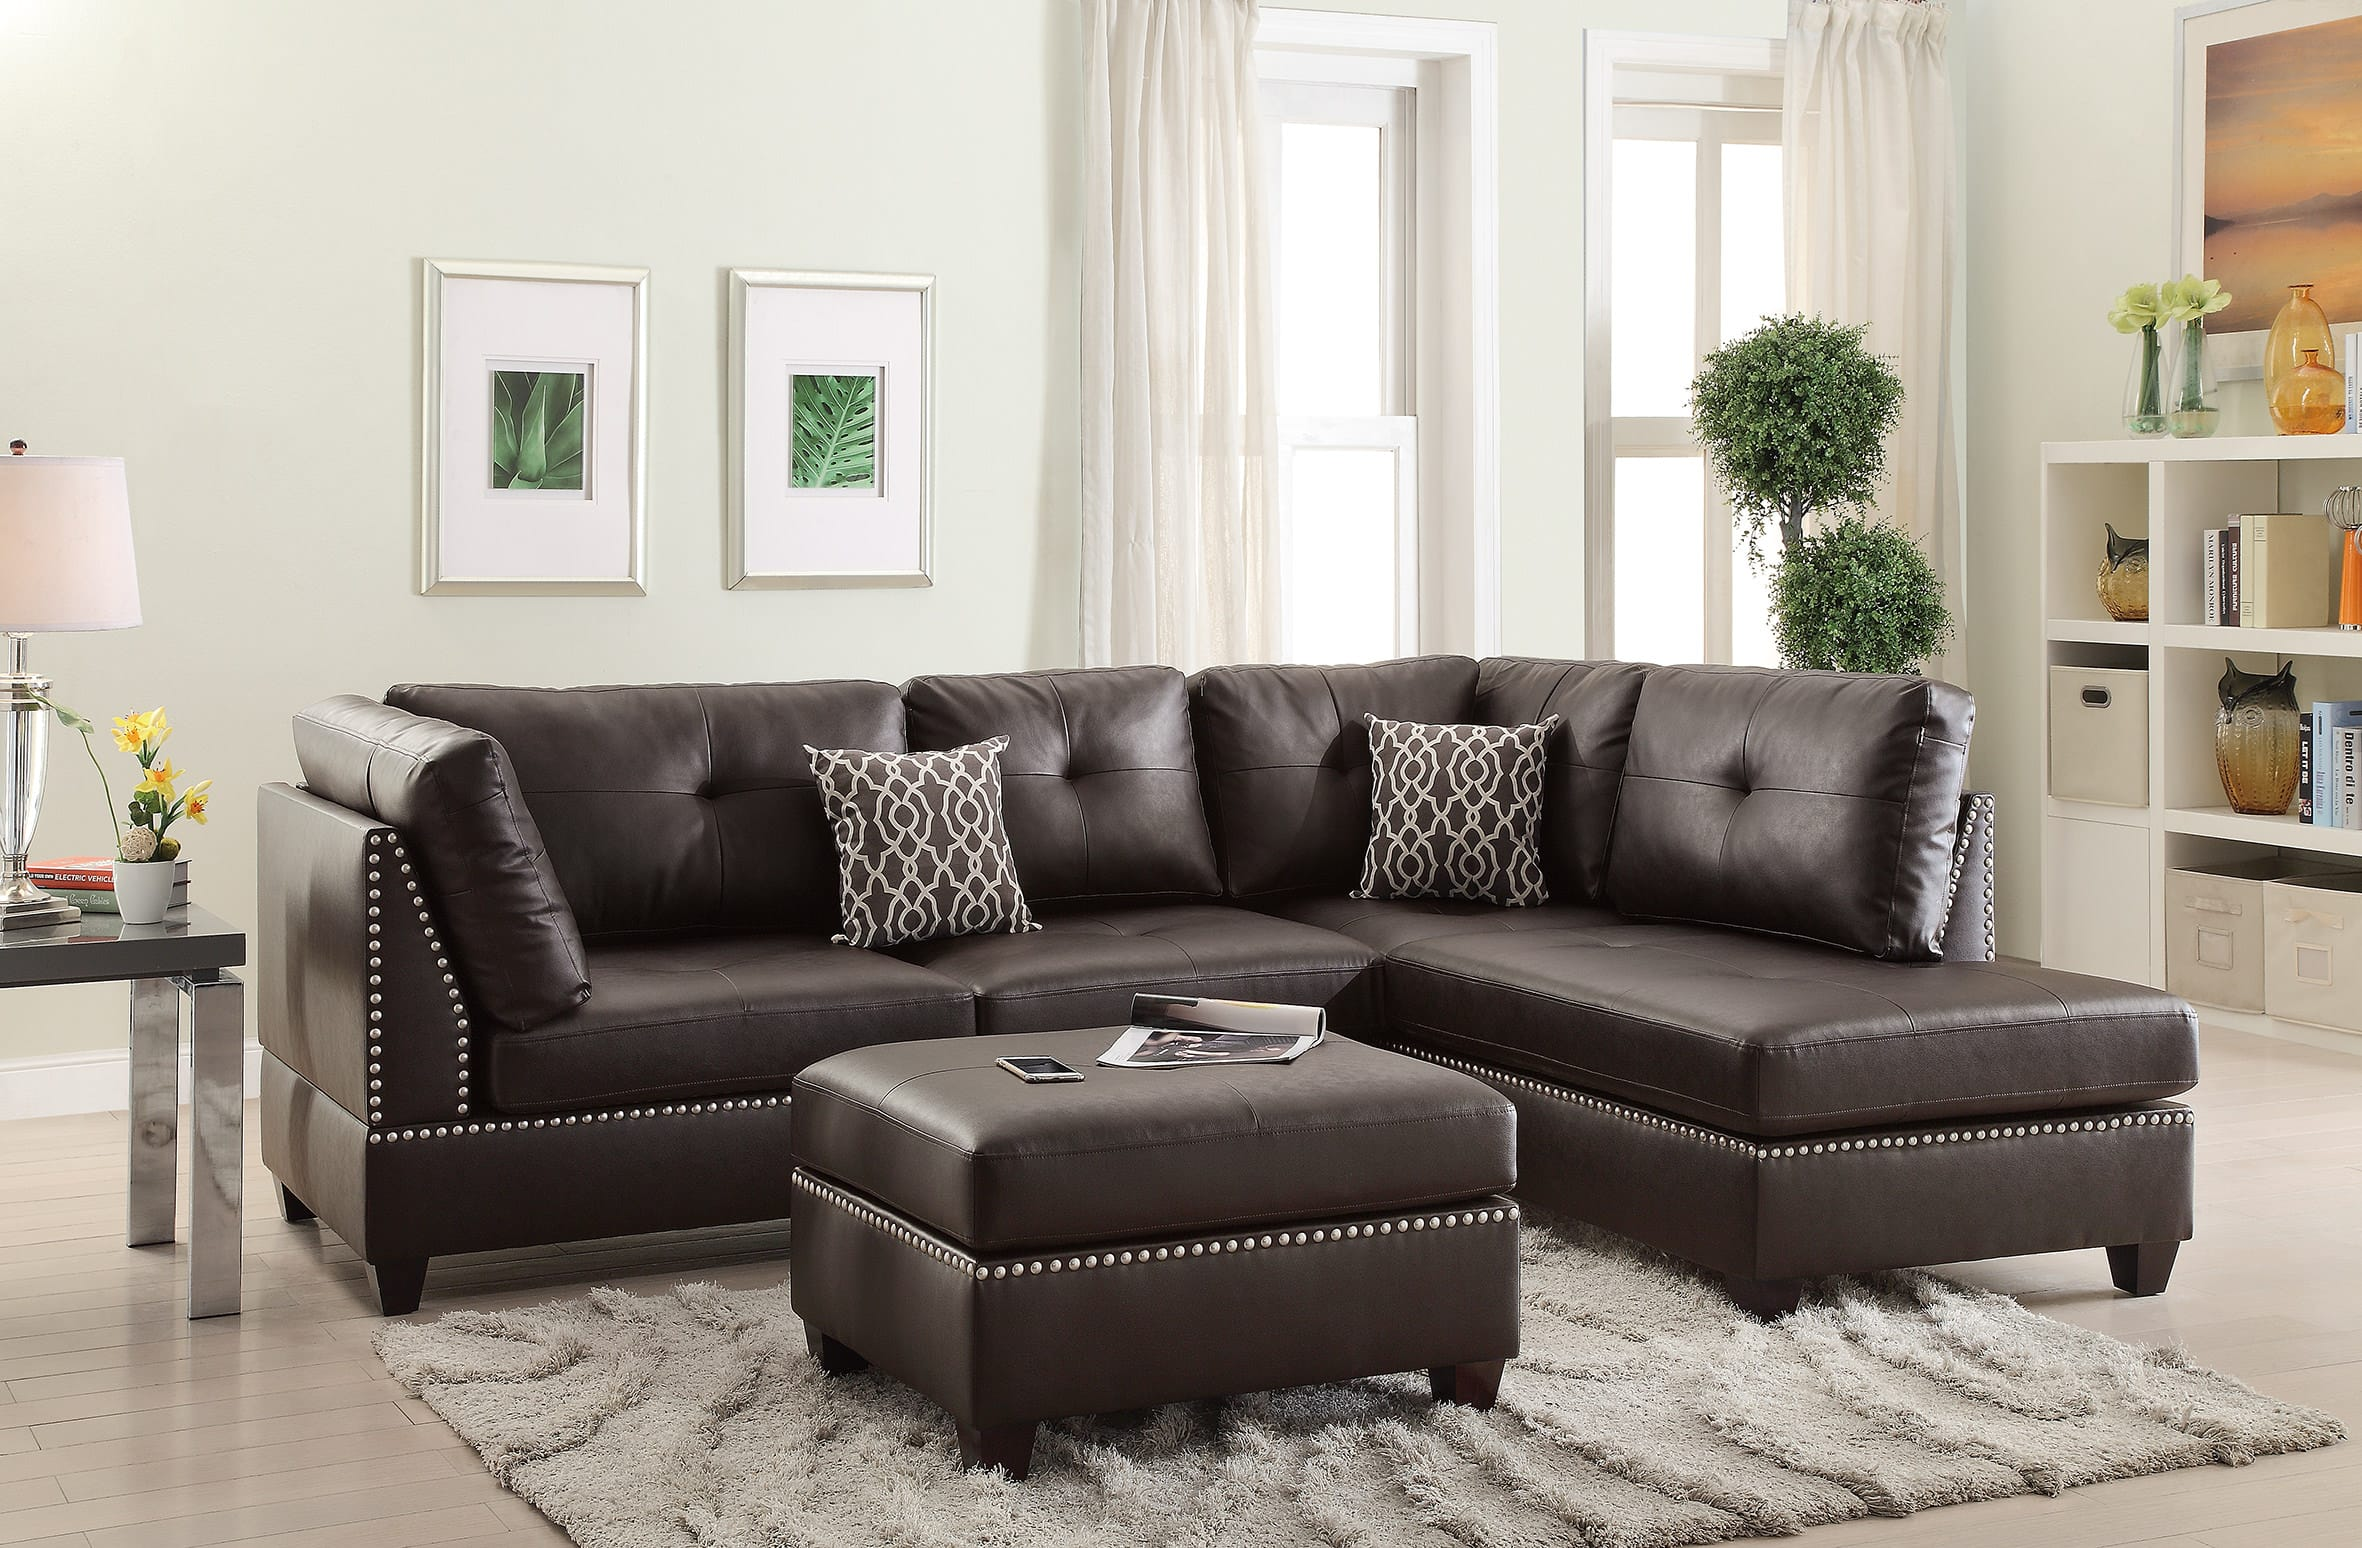 Excellent F6973 Espresso 3 Pcs Sectional Sofa Set By Poundex Theyellowbook Wood Chair Design Ideas Theyellowbookinfo